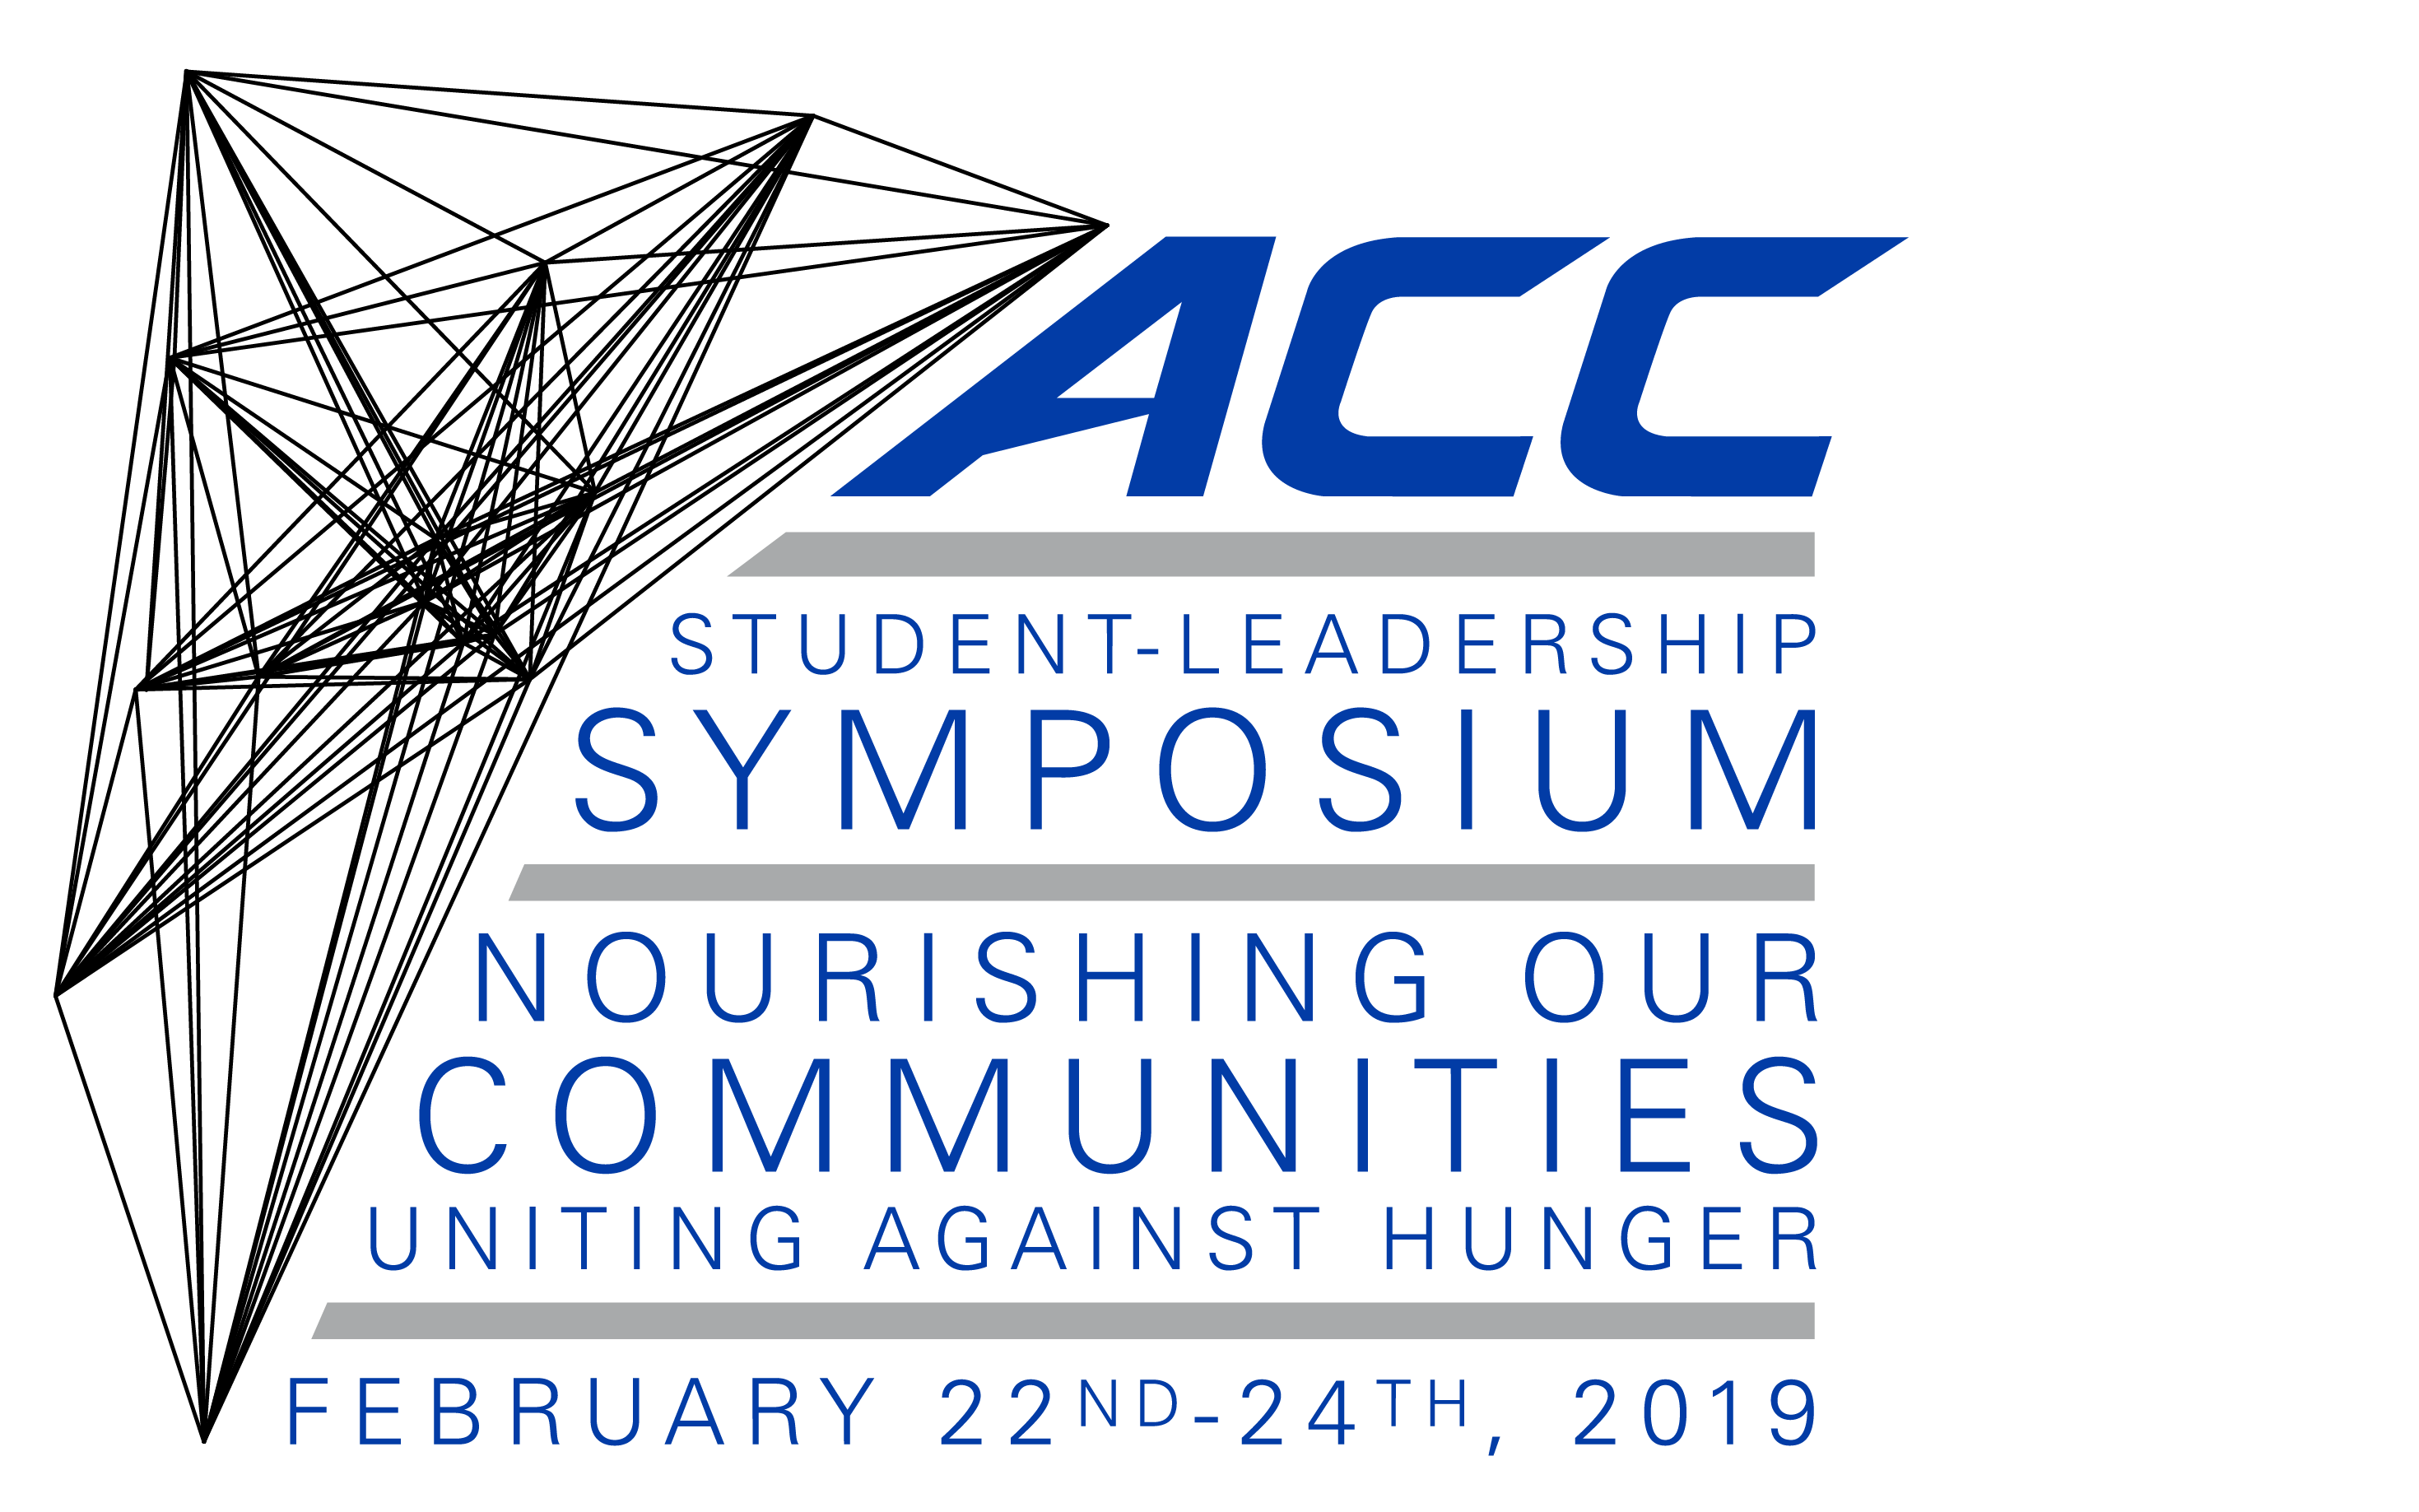 2019 ACC Leadership Symposium, Uniting Against Hunger